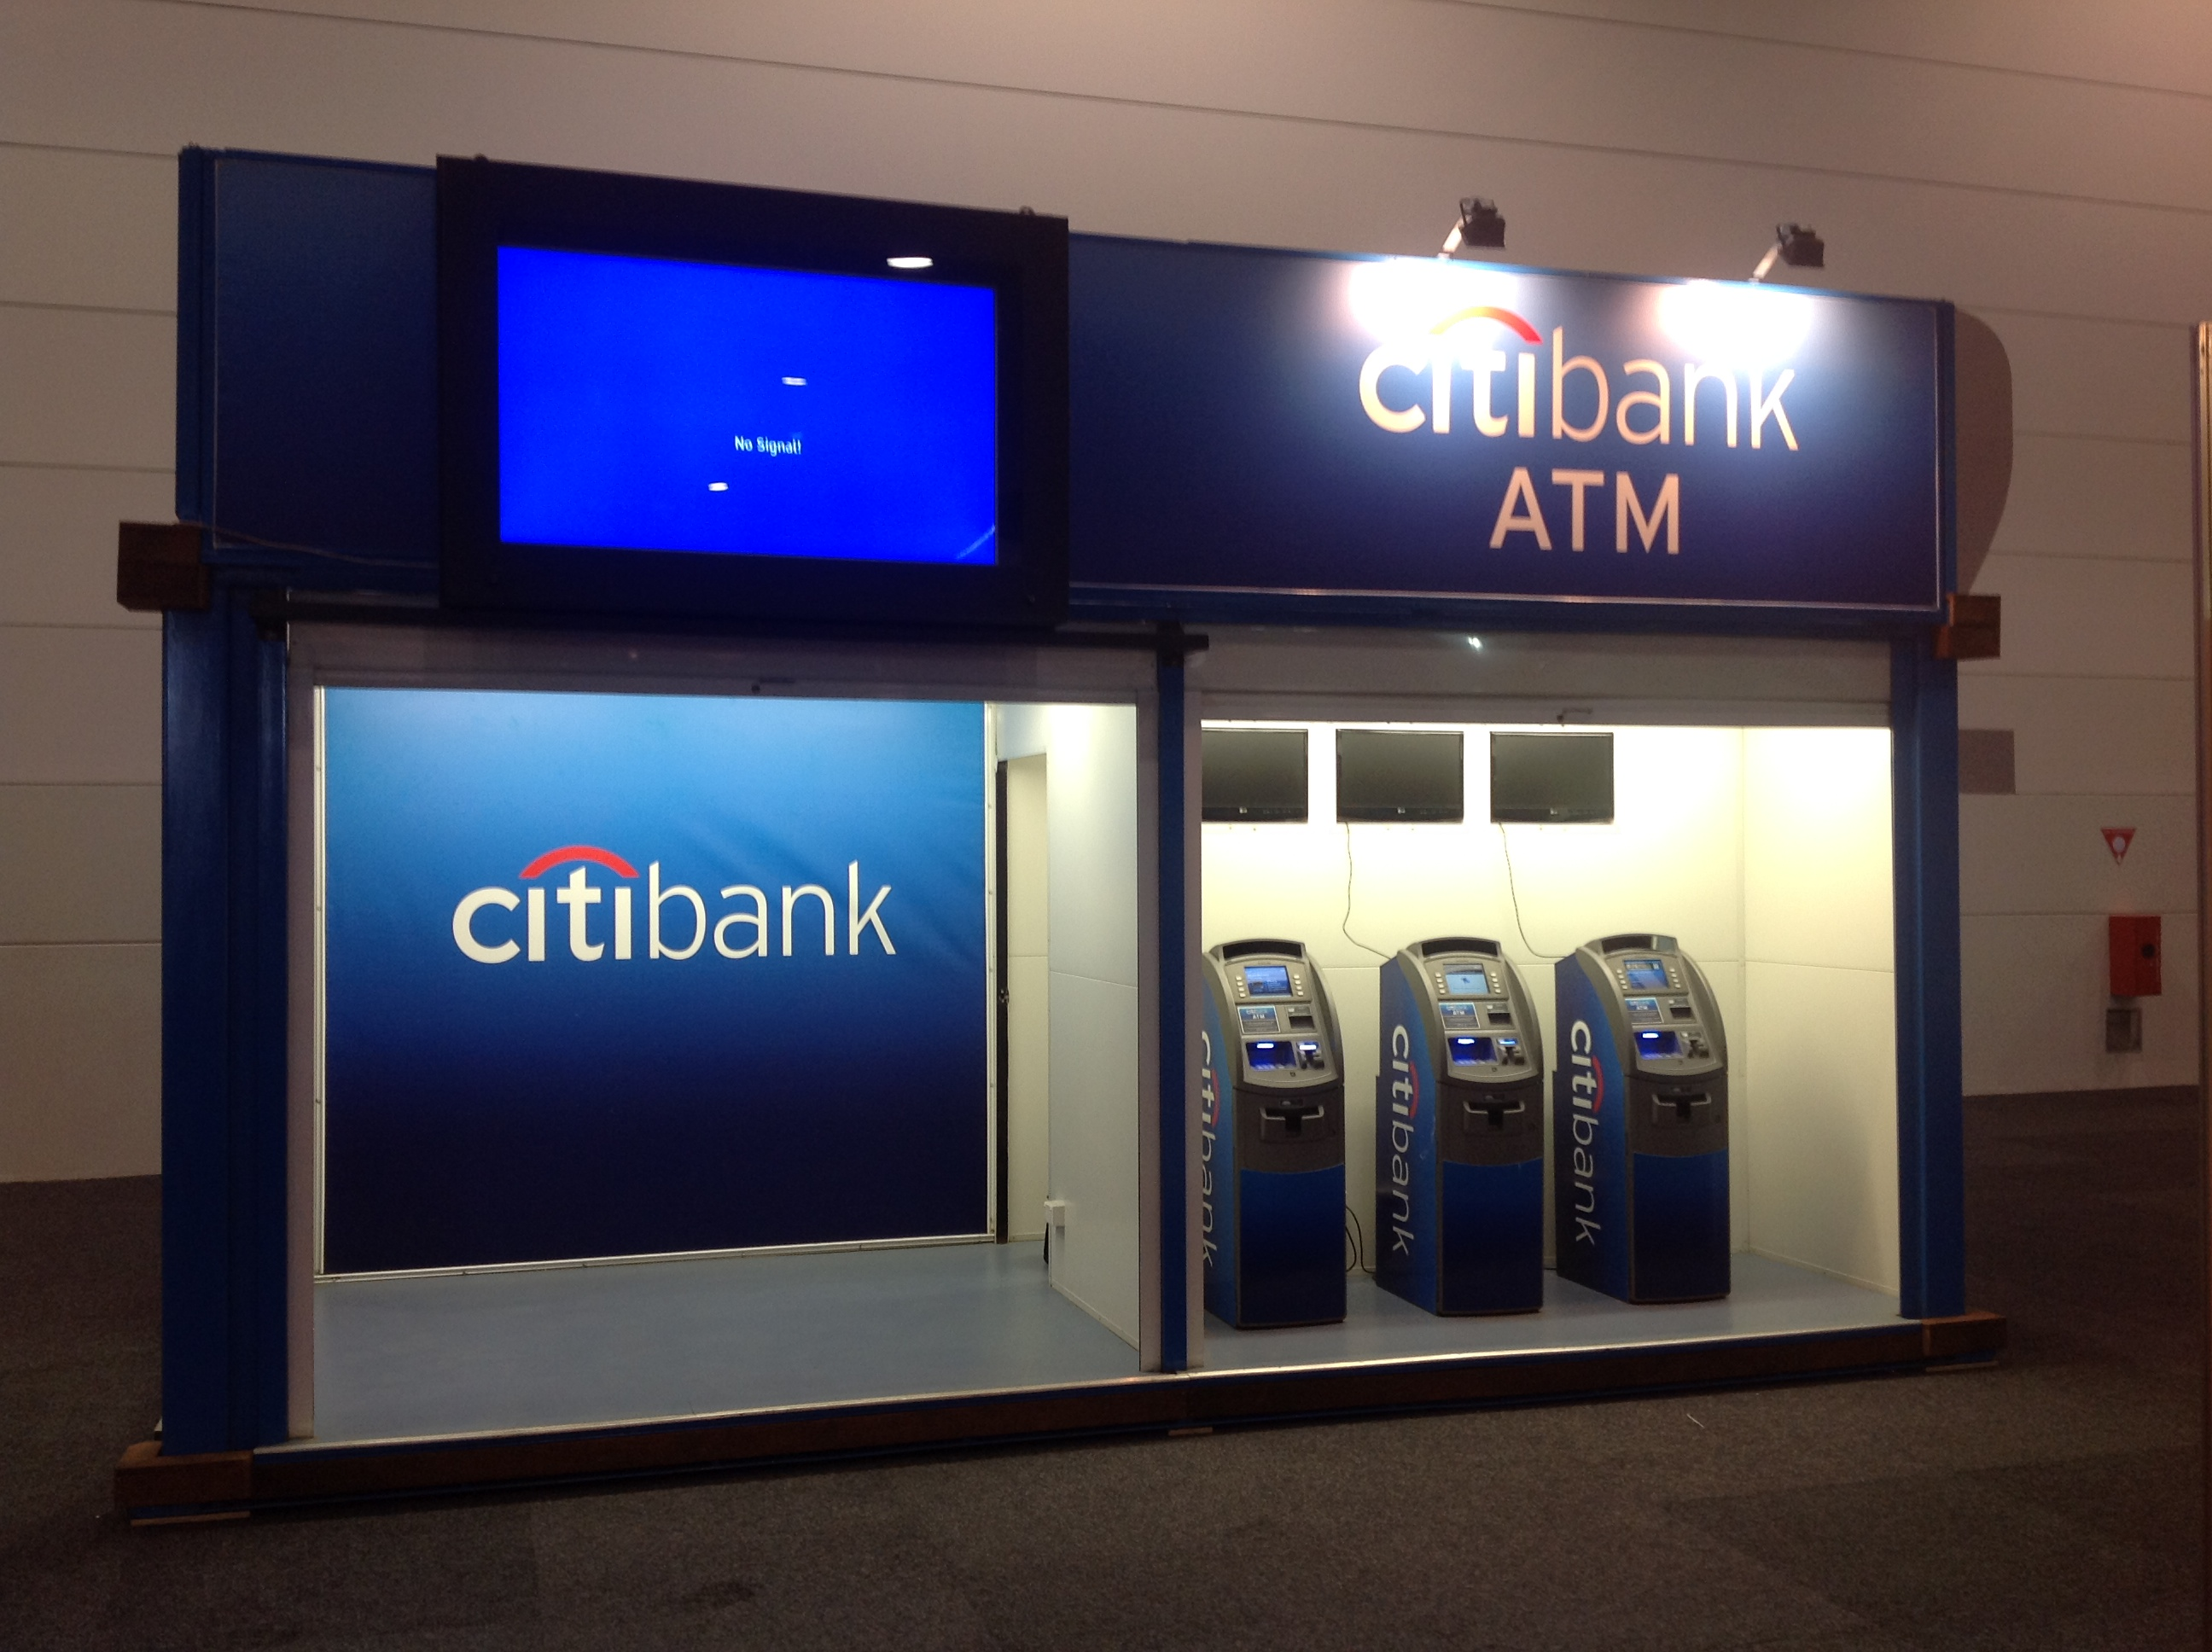 citibank information system Building digital capabilities has allowed citibank to grow its consumer  and  building systems that allow people to apply for cards online, said  markets in  asia — allowing customers to access information such as account.